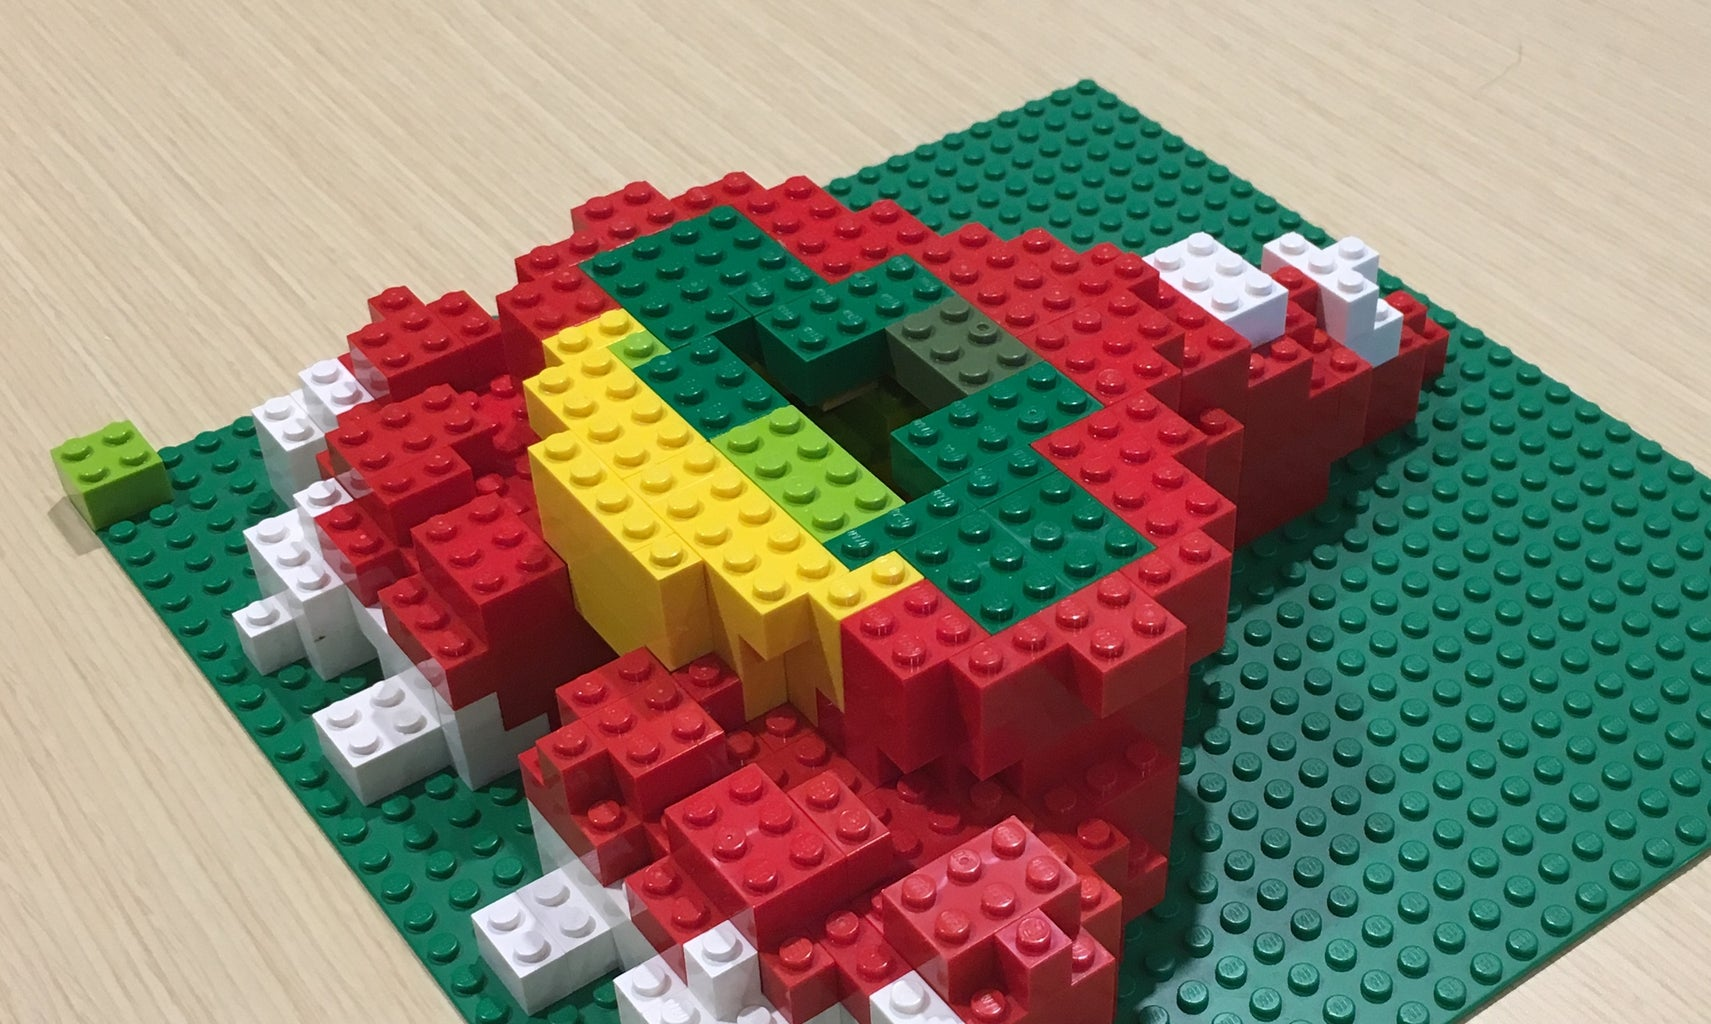 Building Your Design - Tip 6: Save Bricks by Filling the Inside With Leftover Colors